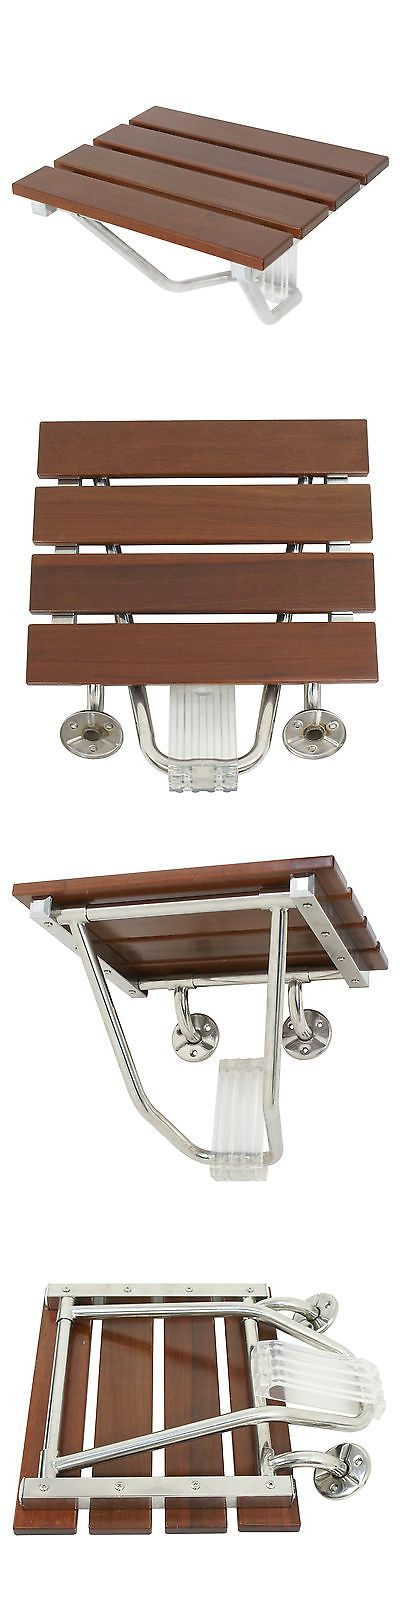 Shower and Bath Seats: Folding Bath Seat Bench Folding Shower Chair Wall Mount Solid Wood Construction -> BUY IT NOW ONLY: $41.99 on eBay!